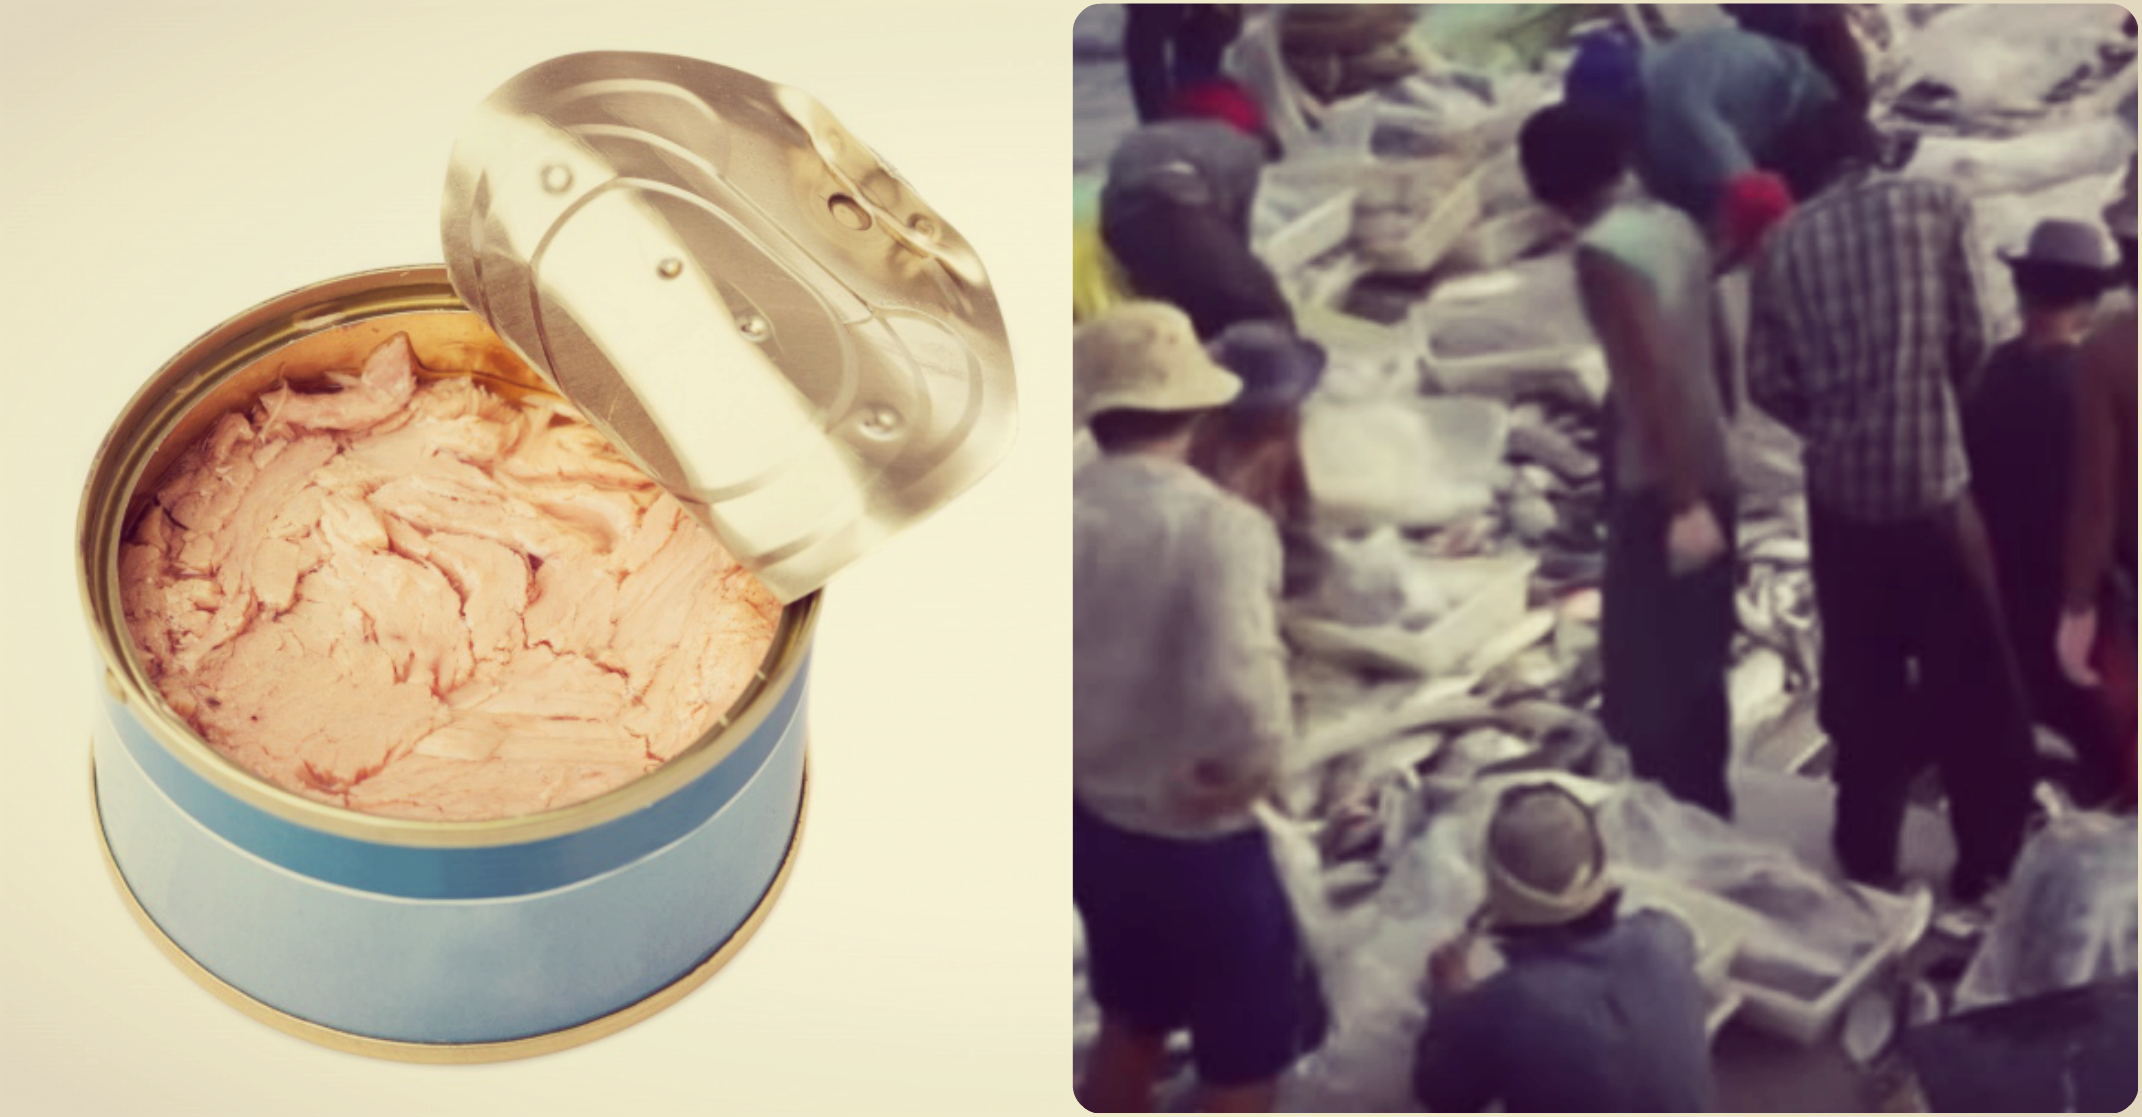 image of tuna can, image of people in slavery in the fishing industry, credit: public domain, AP, Ko Ko Simon